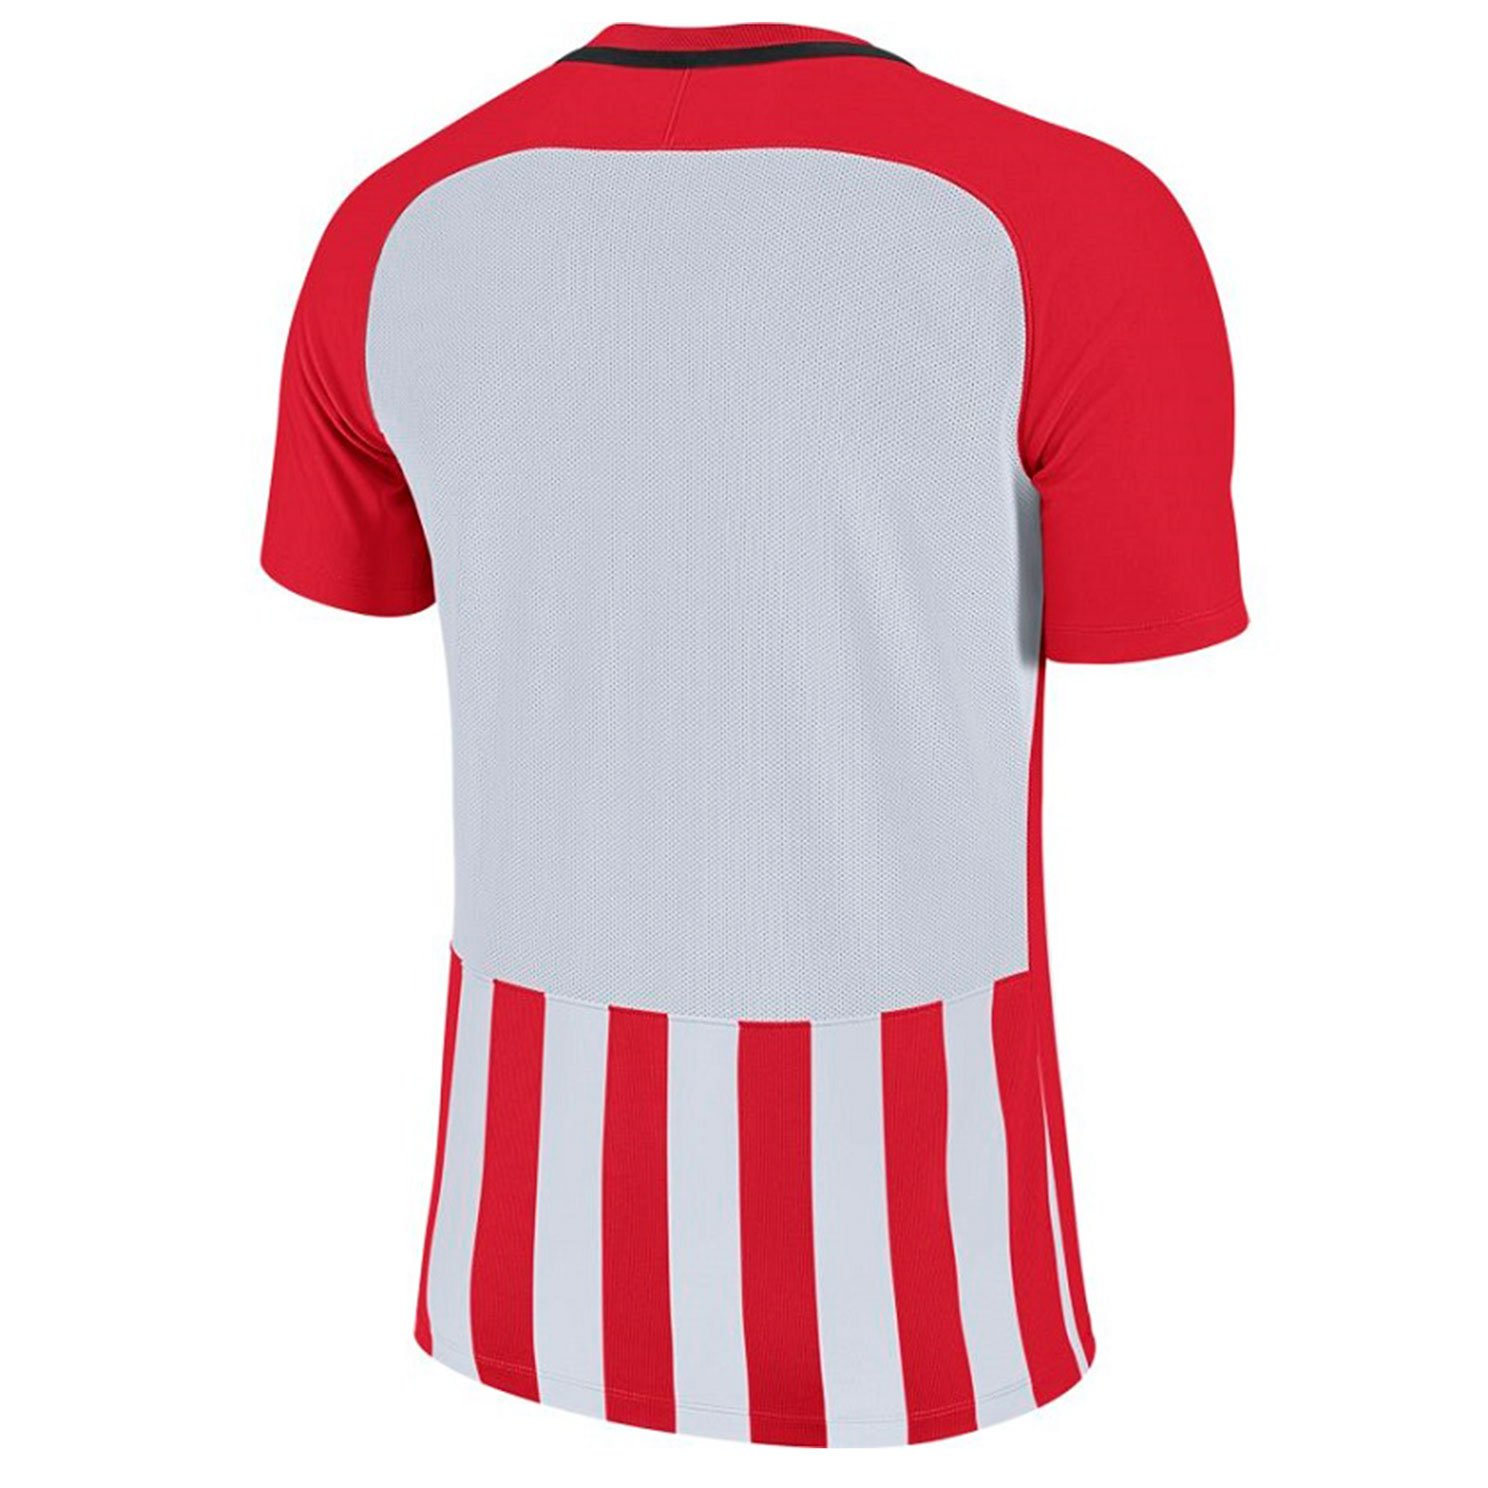 Футболка Men's Nike Striped Division III Football Jersey (белый, красный)